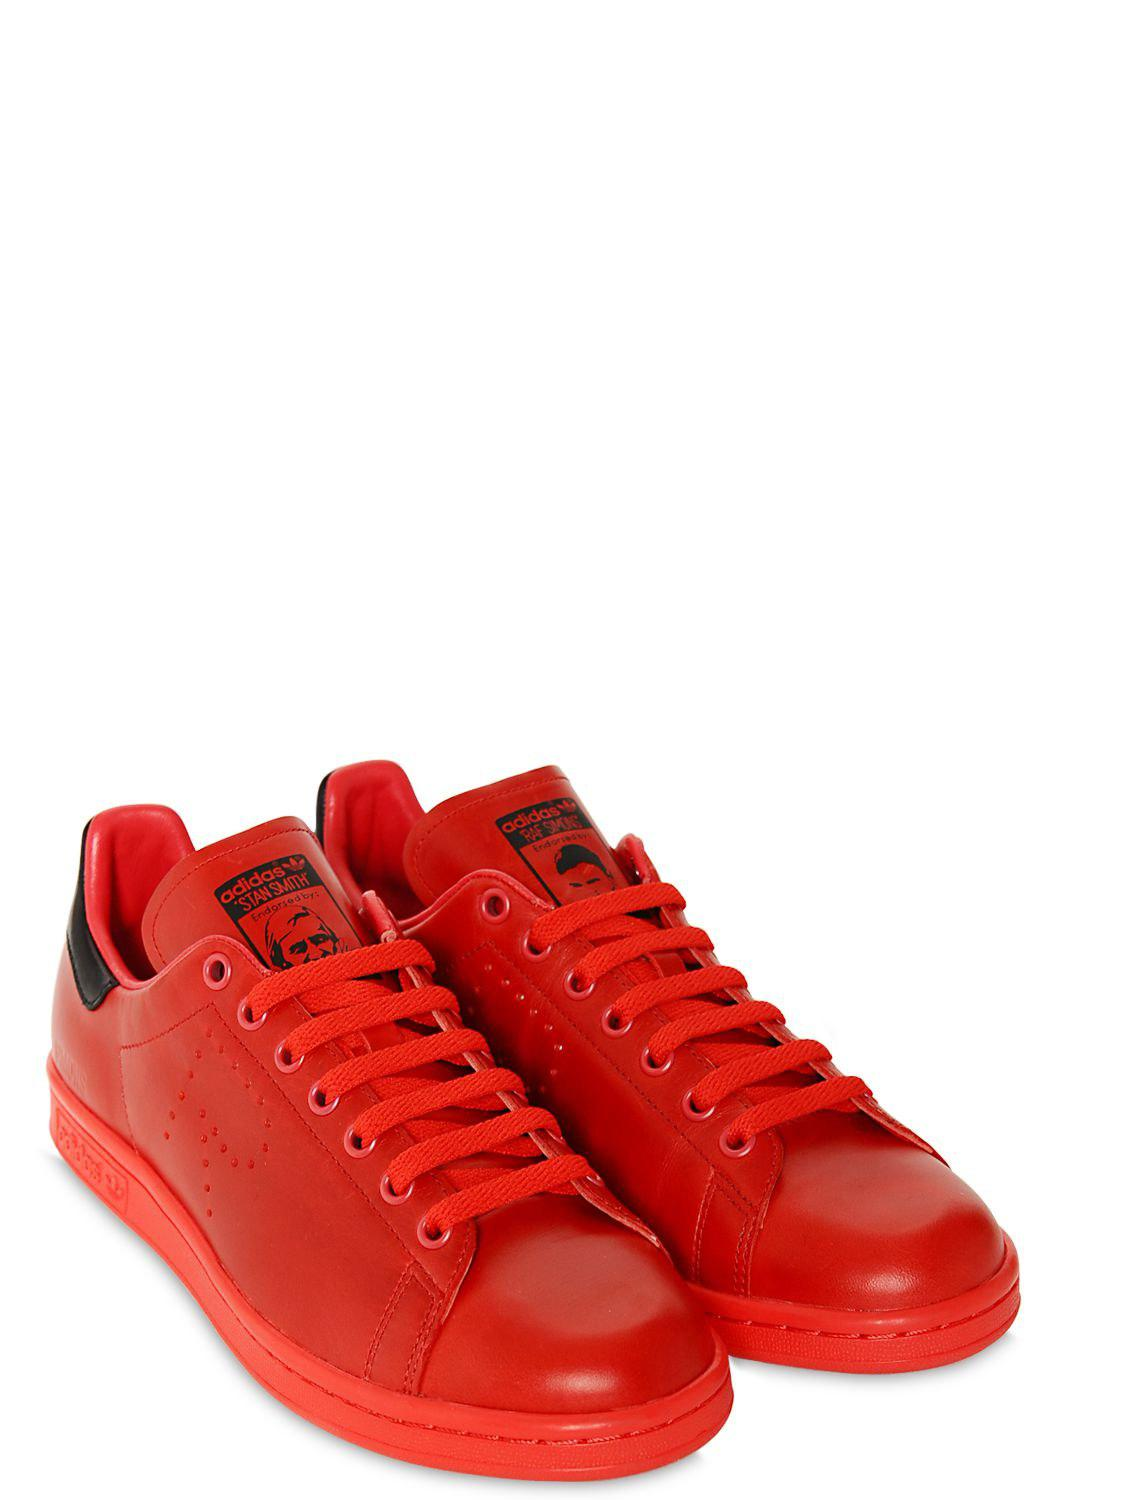 lyst adidas by raf simons sneakers stan smith in pelle in red for men. Black Bedroom Furniture Sets. Home Design Ideas